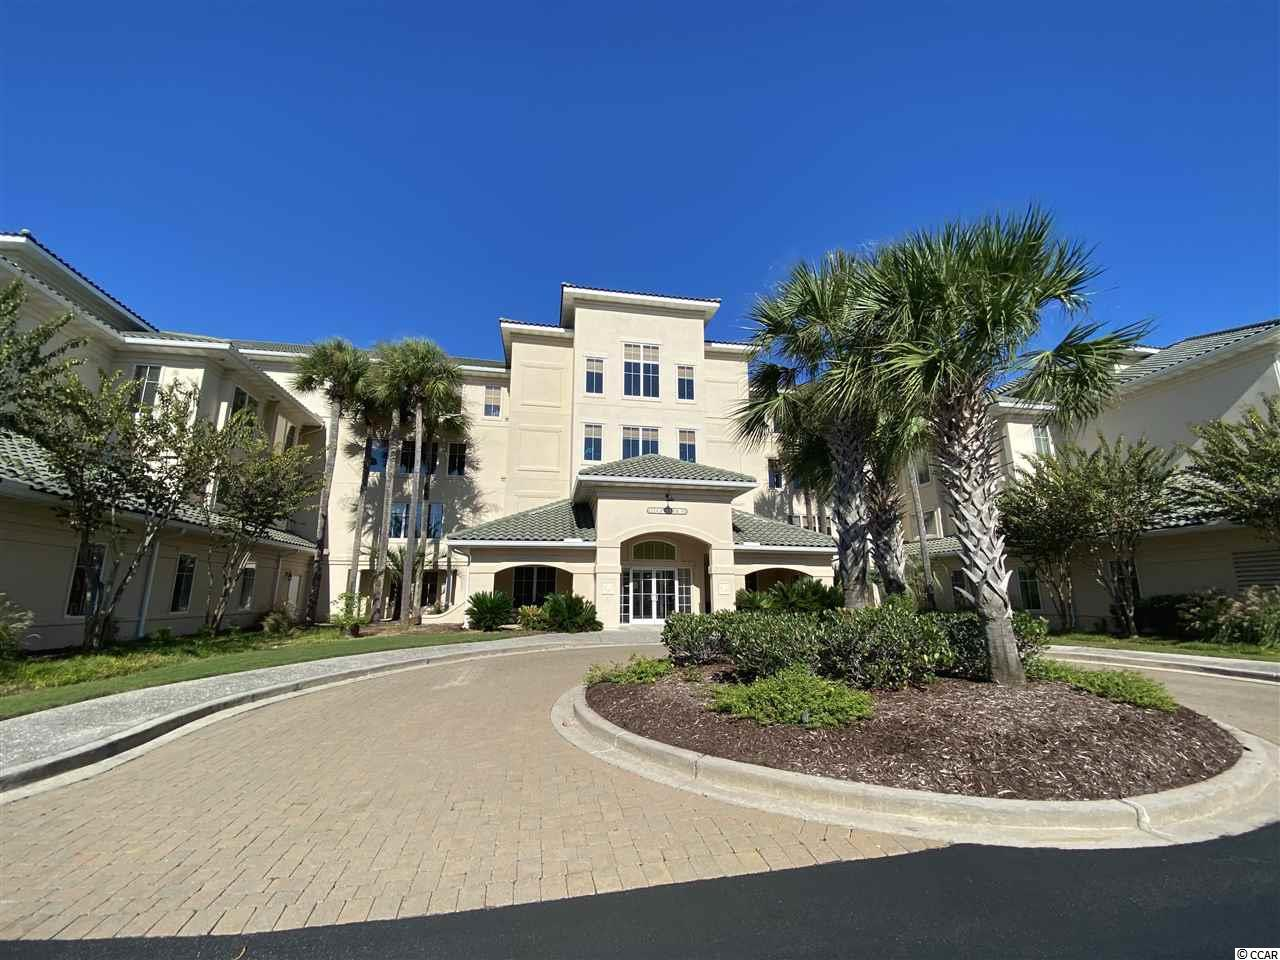 Stunning first floor, 3 bedroom, 2 bath condo located in the gated community of Edgewater at Barefoot Resort. As you walk through the front door, you are greeted by open concept living.  The eat in, U shaped kitchen, with stainless steel appliances, pantry, granite counter tops and a breakfast bar all overlook the dining and living rooms.  The dining room is perfect for fancy meals or to host a dinner party.  The living room boasts tray ceilings and glass doors letting the natural light pour in.  Take in the view of the 15th hole of the award winning Norman golf course form your private 4 season enclosed balcony.  Back inside the master bedroom suite has a tray ceiling, two walk-in closets and a spa bathroom.  Relax in your master bathroom with dual vanities, oversized jetted tub, walk in shower and tray ceiling.  The split bedroom plan allows for guests to have privacy.  The massive second bedroom has a walk-in closet and a vanity area.  A third bedroom and guest bathroom complete that side of the condo.  This condo also comes equipped with a laundry room, one assigned. parking spot in the garage and one storage unit.  HVAC was replaced in 2018,  Edgewater s a gated community providing privacy and security to all its residents who enjoy many perks, including the clubhouse on the Waterway, with a fitness facility, pool, hot tub, walking path along the water and day docks.  Edgewater is located in the prestigious Barefoot Resort which also has extraordinary amenities.  As a Barefoot Resort homeowner, you will have access to the private beach cabana with parking, 4 award winning signature golf courses, driving range and 2 multi-million club houses.